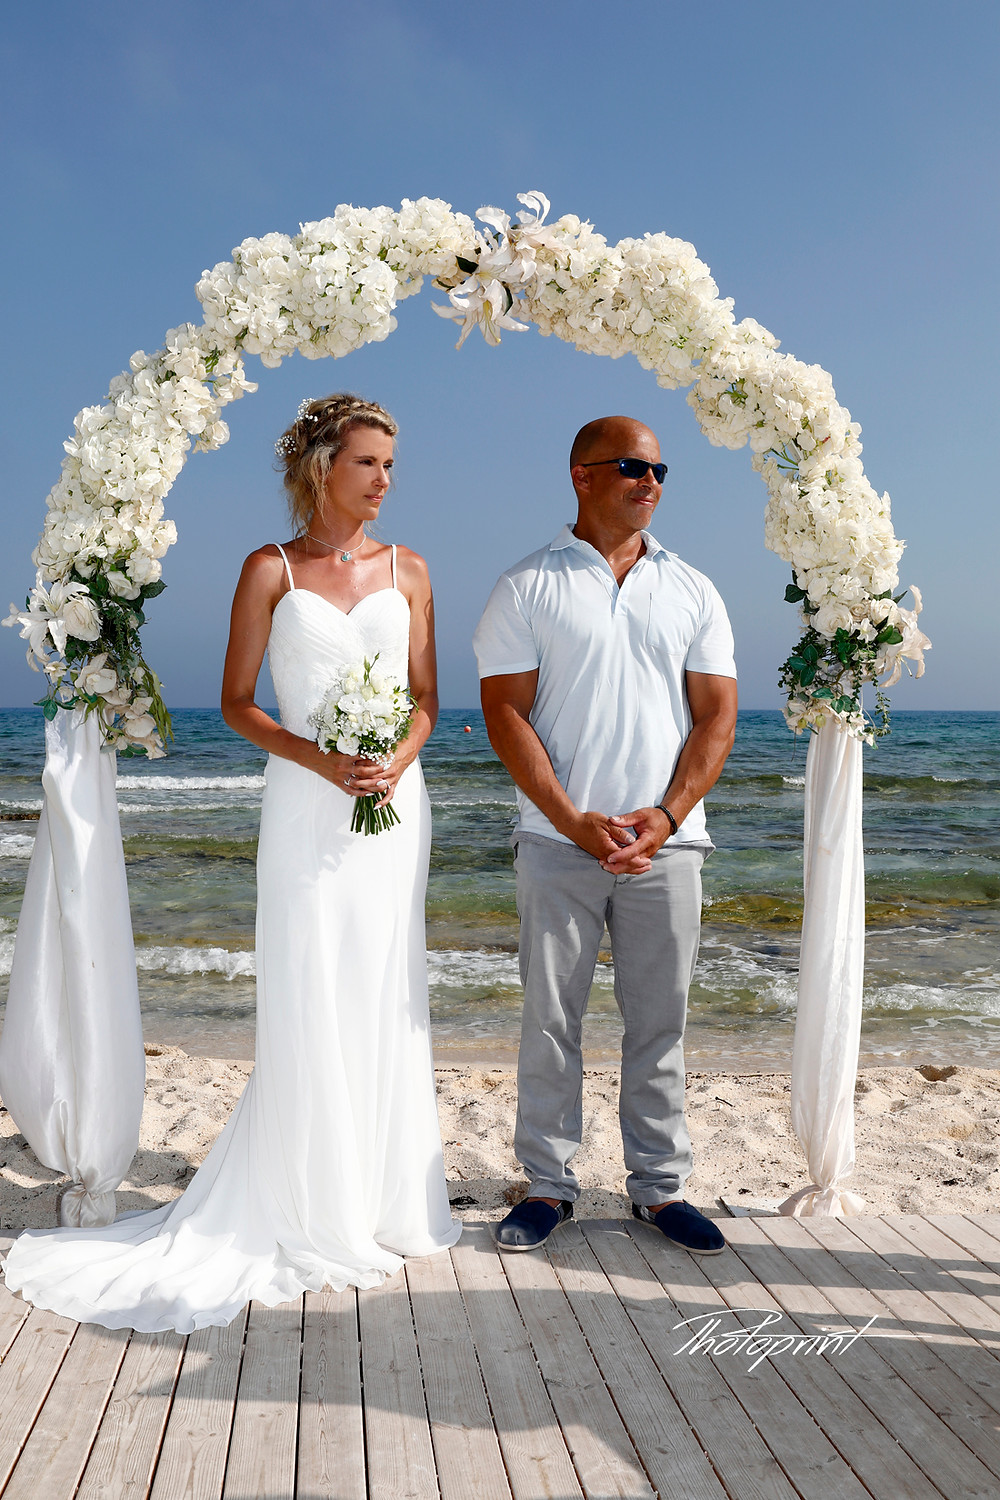 Wedding on the beach, wedding arch decorated with flowers on Mediterranean sand beach, Wedding couple holding hands on sunset. The blue Mediterranean Sea on background